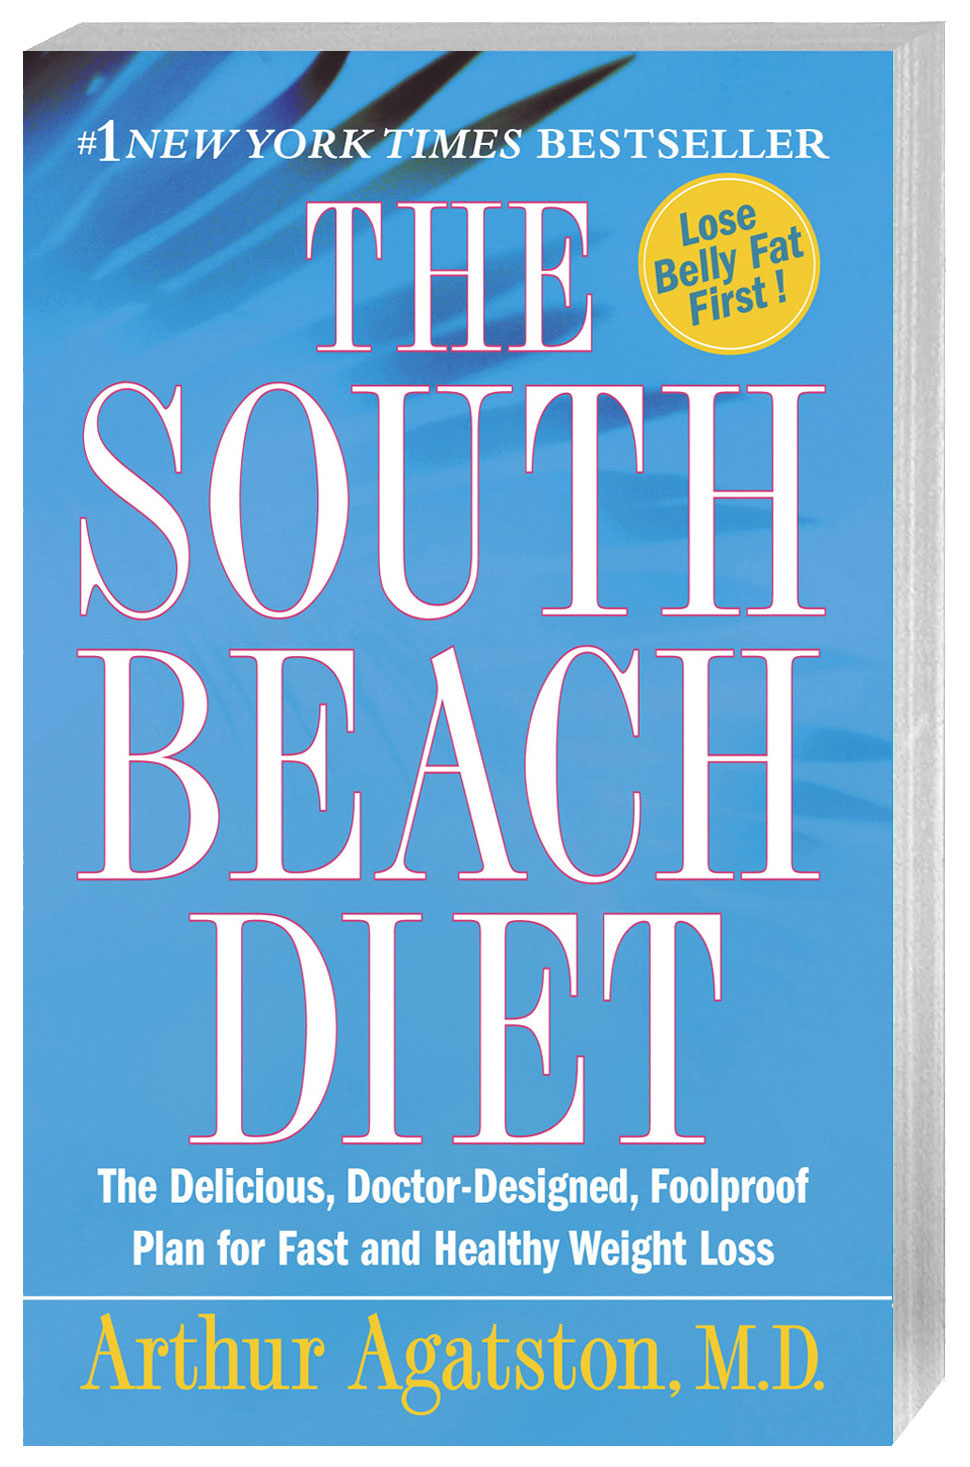 No Sunscreen Needed for the South Beach Diet